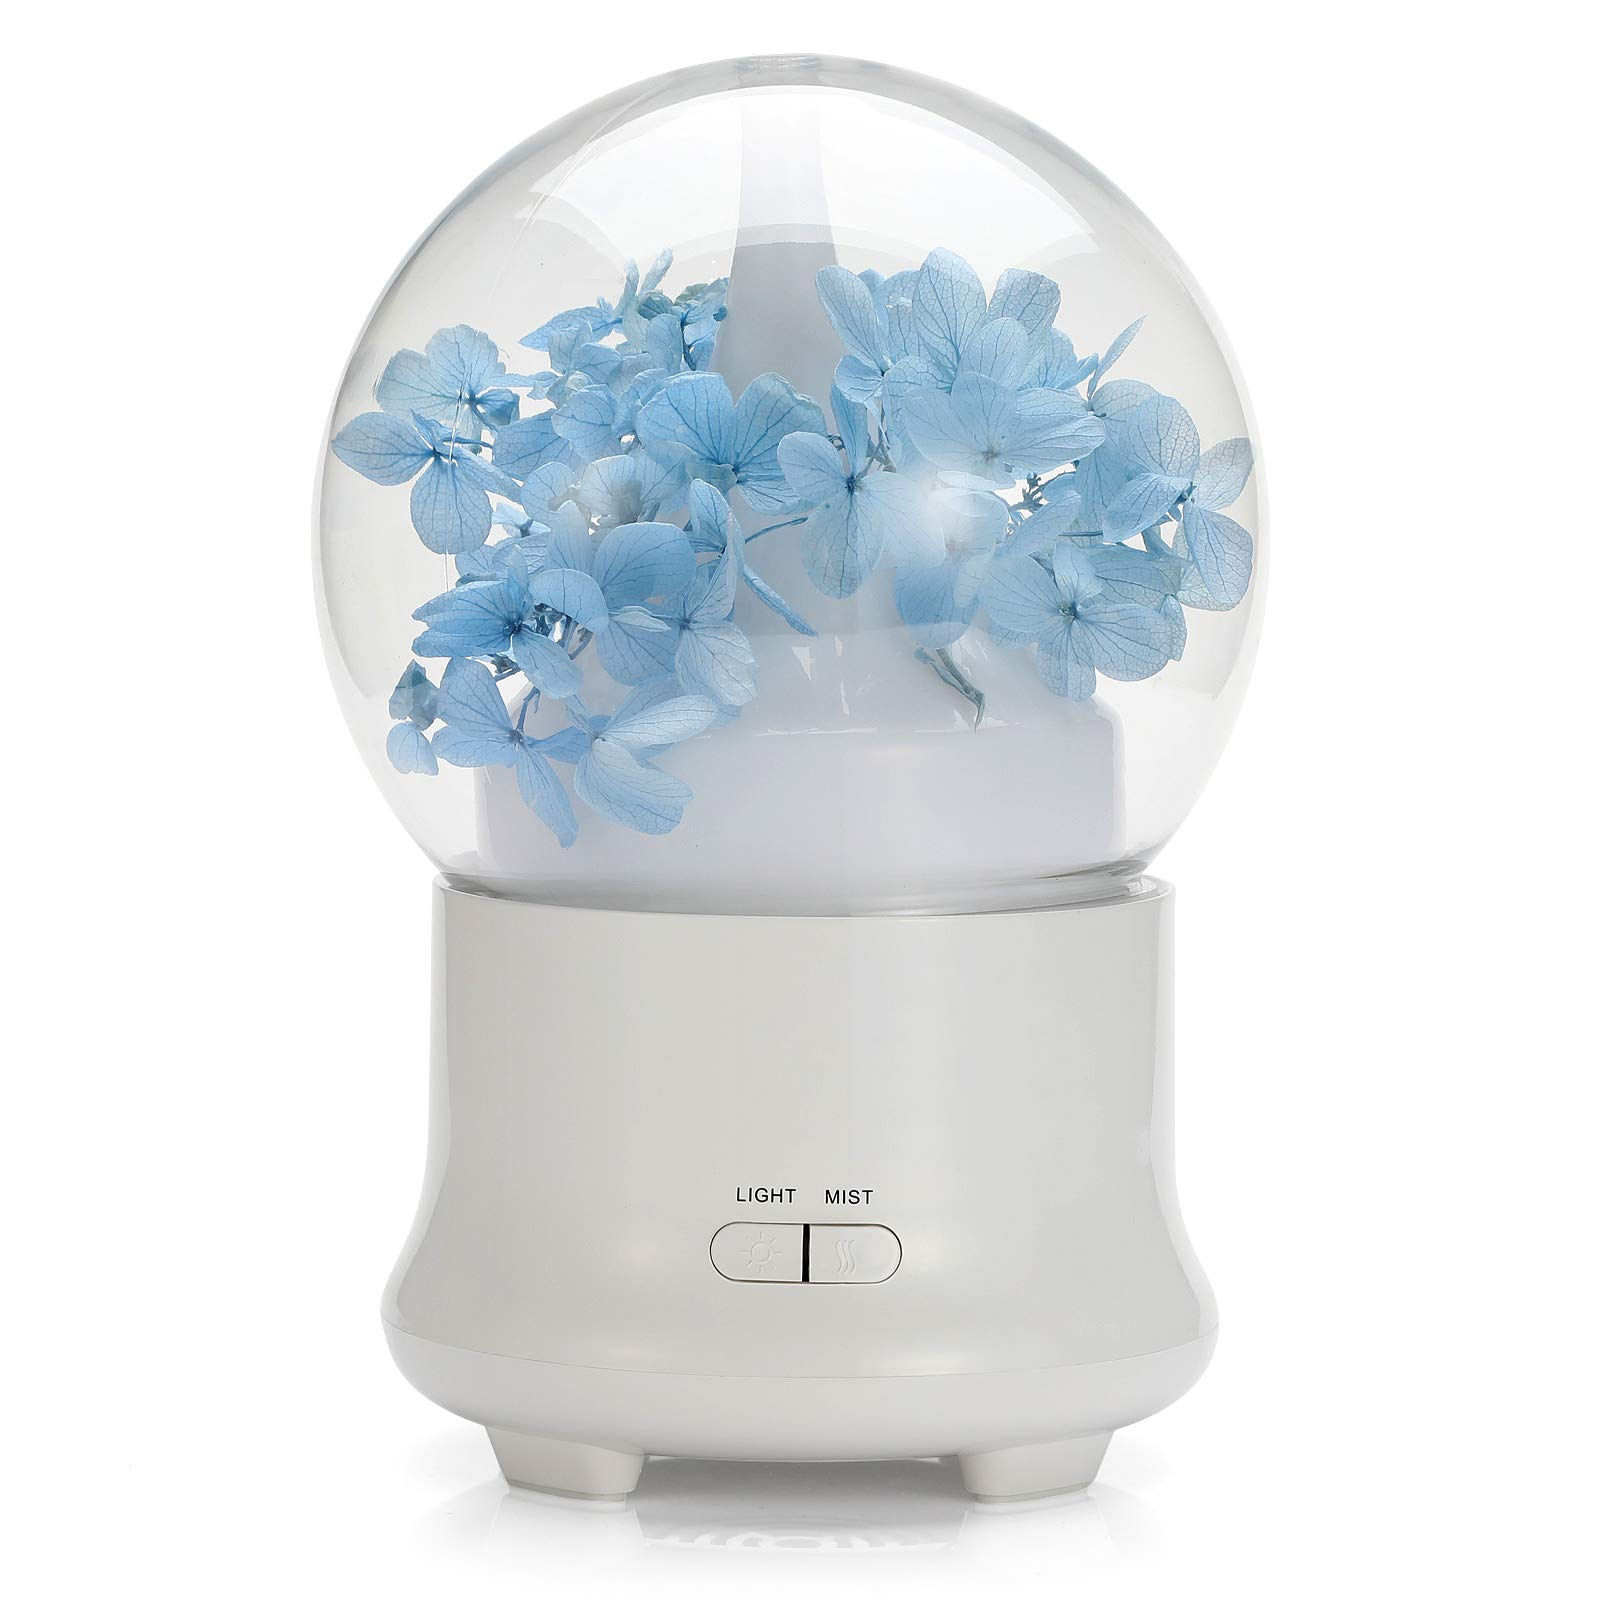 Unionteam Aromatherapy Essential Oil and Ultrasonic Diffusers Cool Mist Humidifier with 7 Colours LED Lights and Waterless Auto Shut-Off for Home Office Bedroom Room